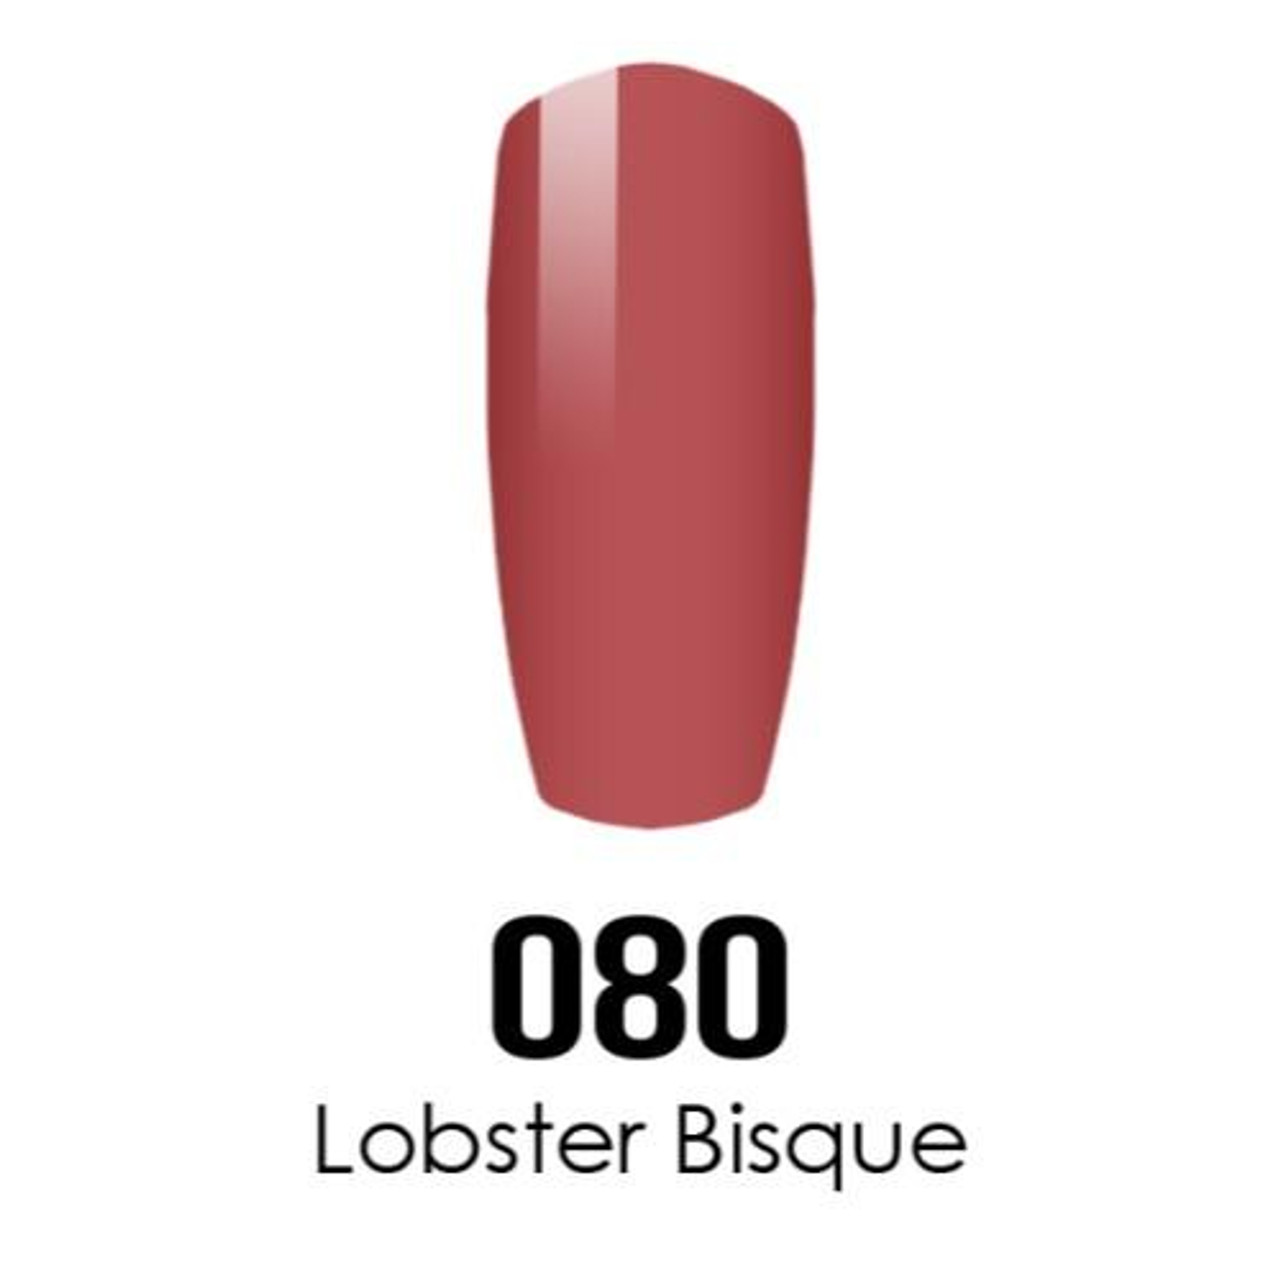 Buy Daisy Dnd Duo Gel Dc080 Lobster Bisque Diamond Nail Supplies